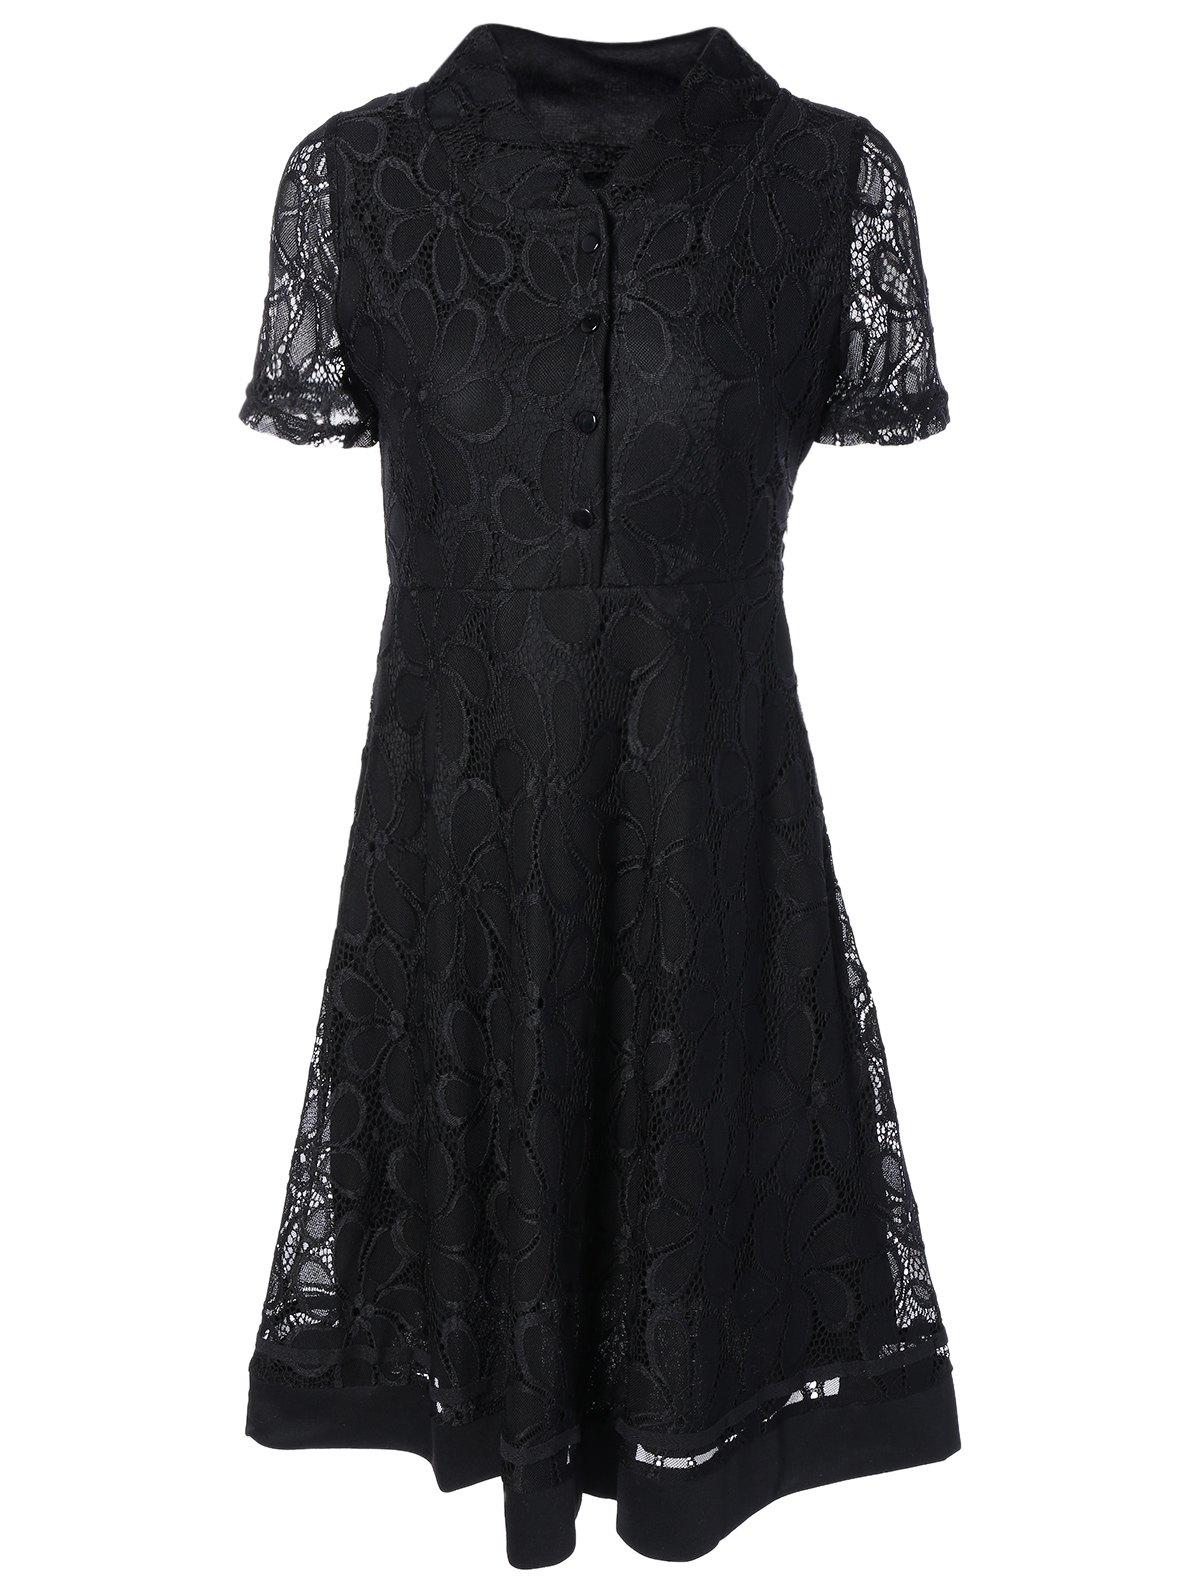 Lace Splicing Fit and Flare Dress lace overlay fit and flare dress